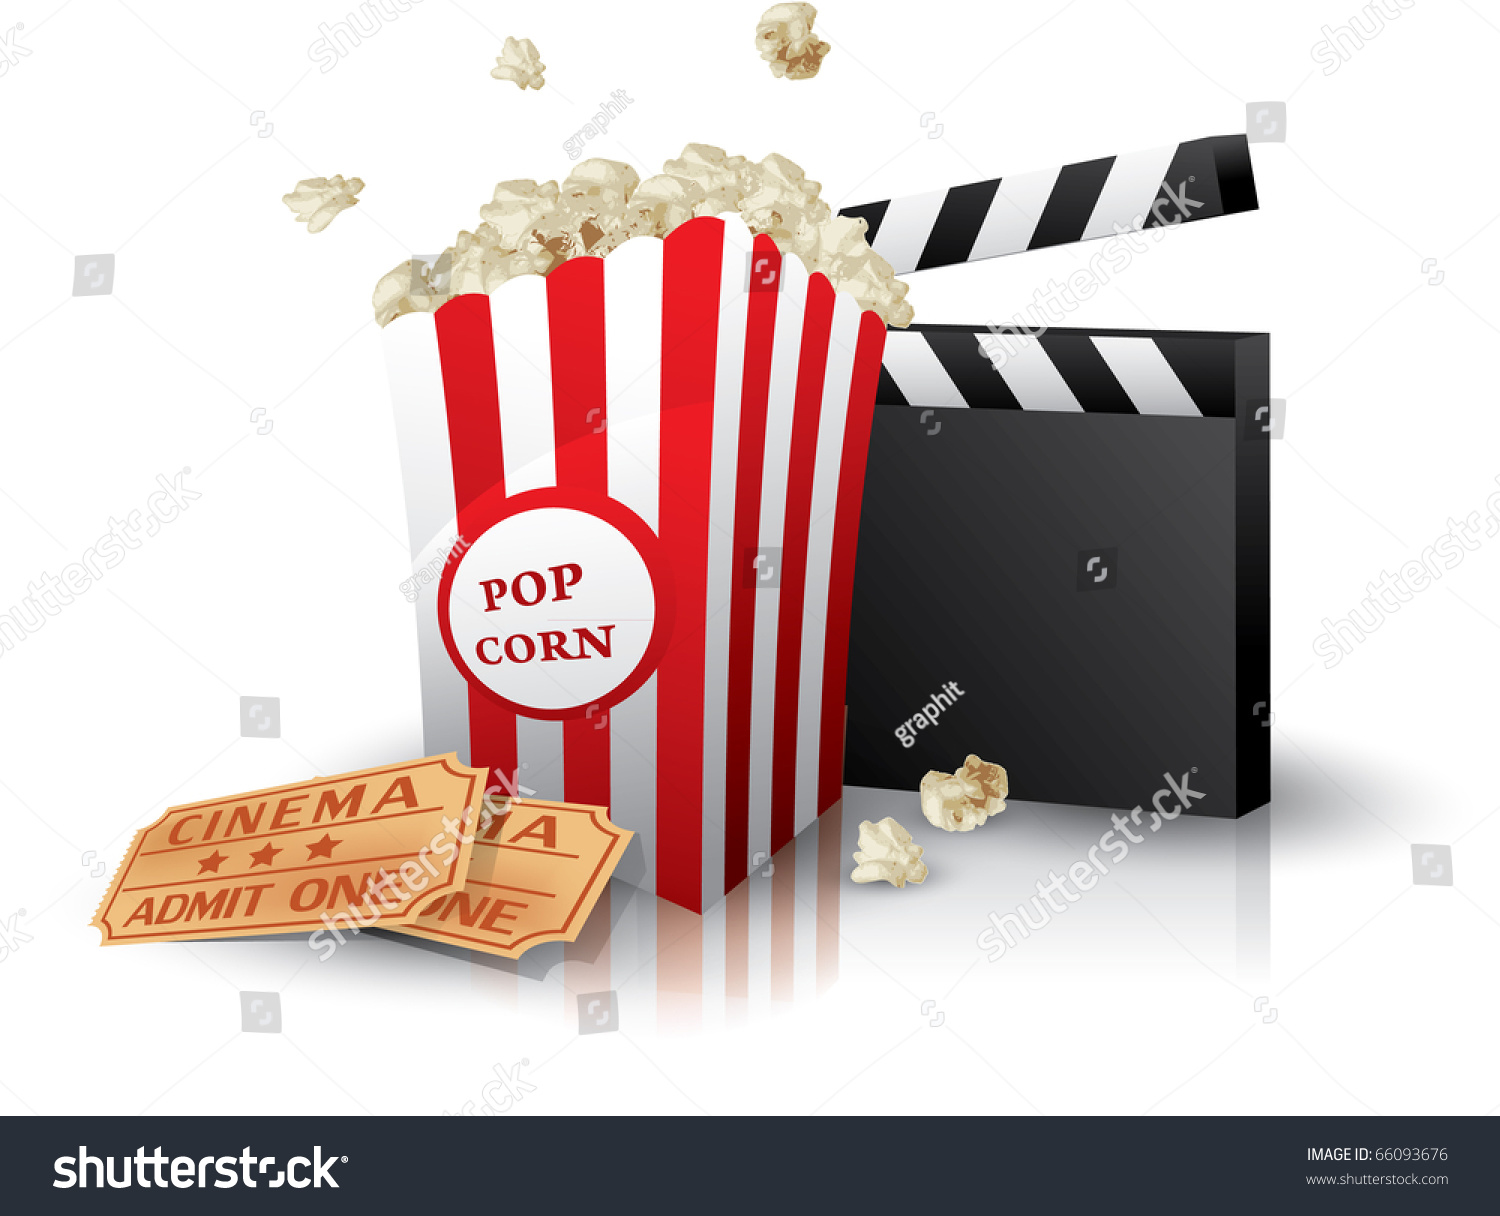 how to download movies without creating an account